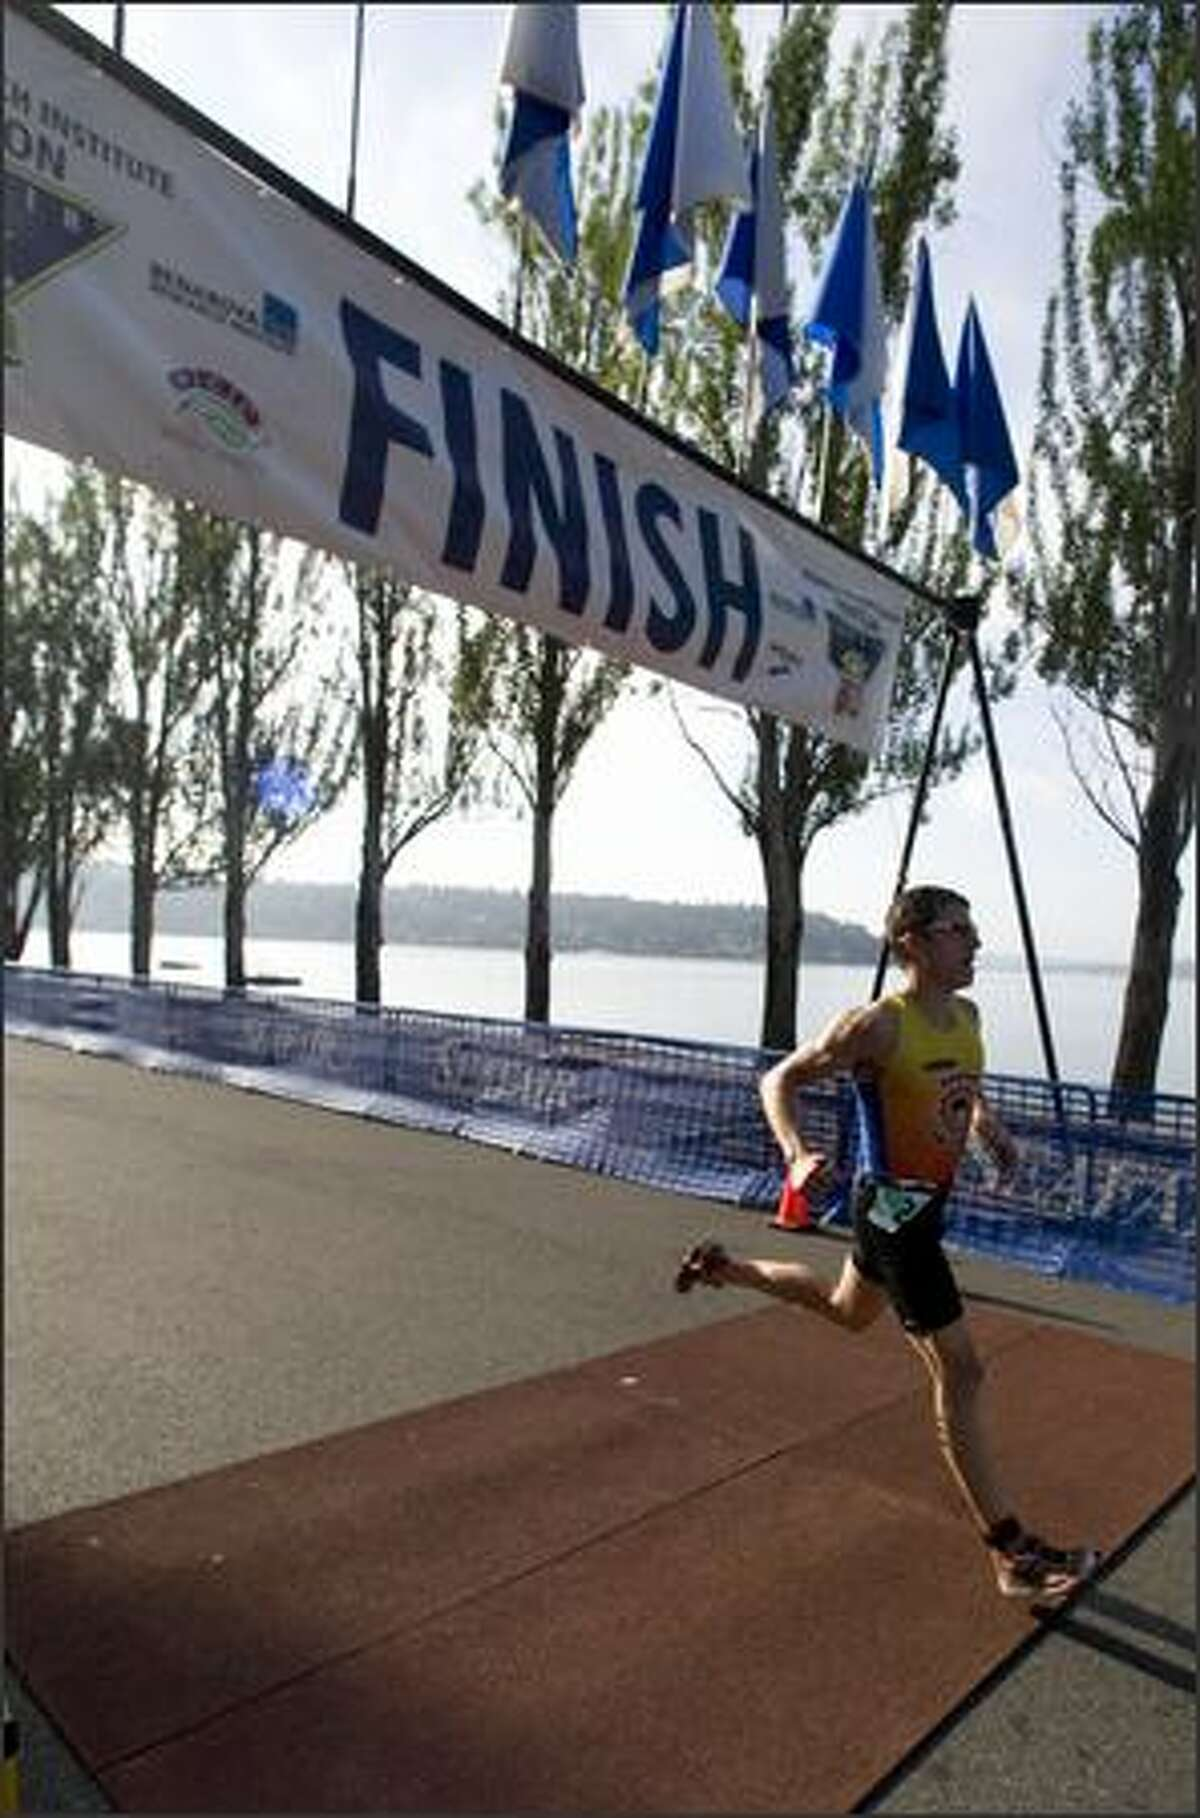 Chris Tremonte, of Redmond, crosses the finish line to place first with a time of 59.09 in the 2008 Benaroya Research Institute Triathlon.